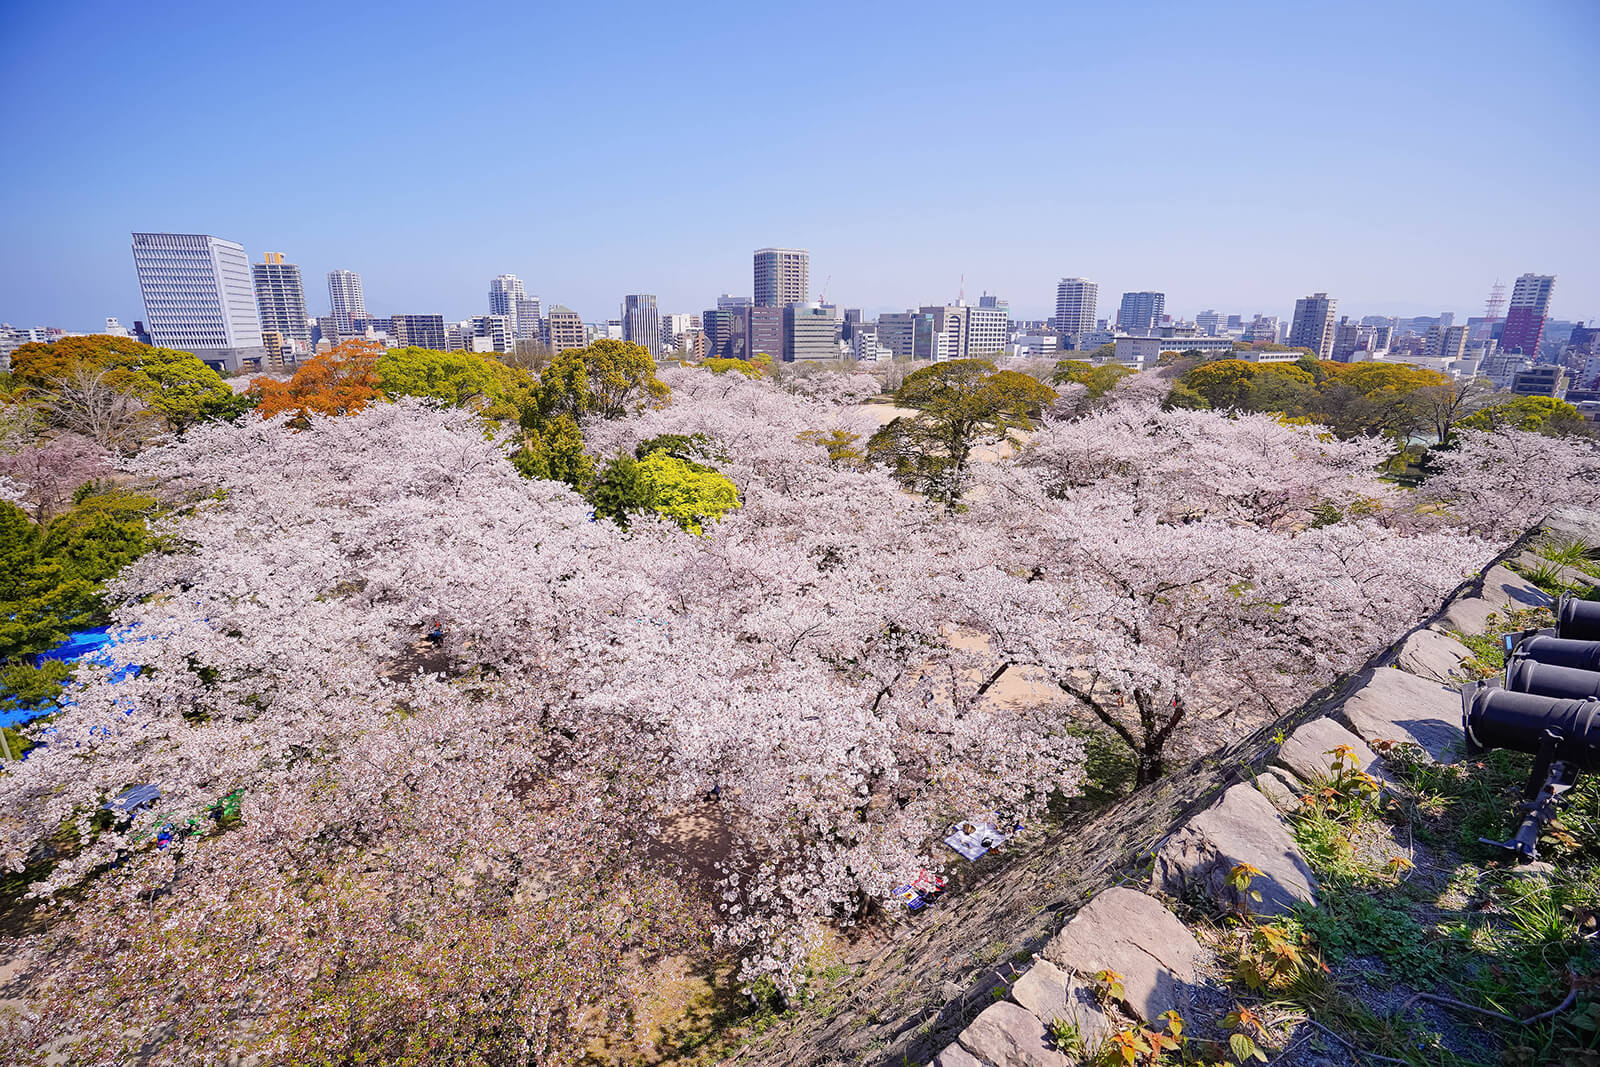 Cherry blossoms in Fukuoka City, Japan